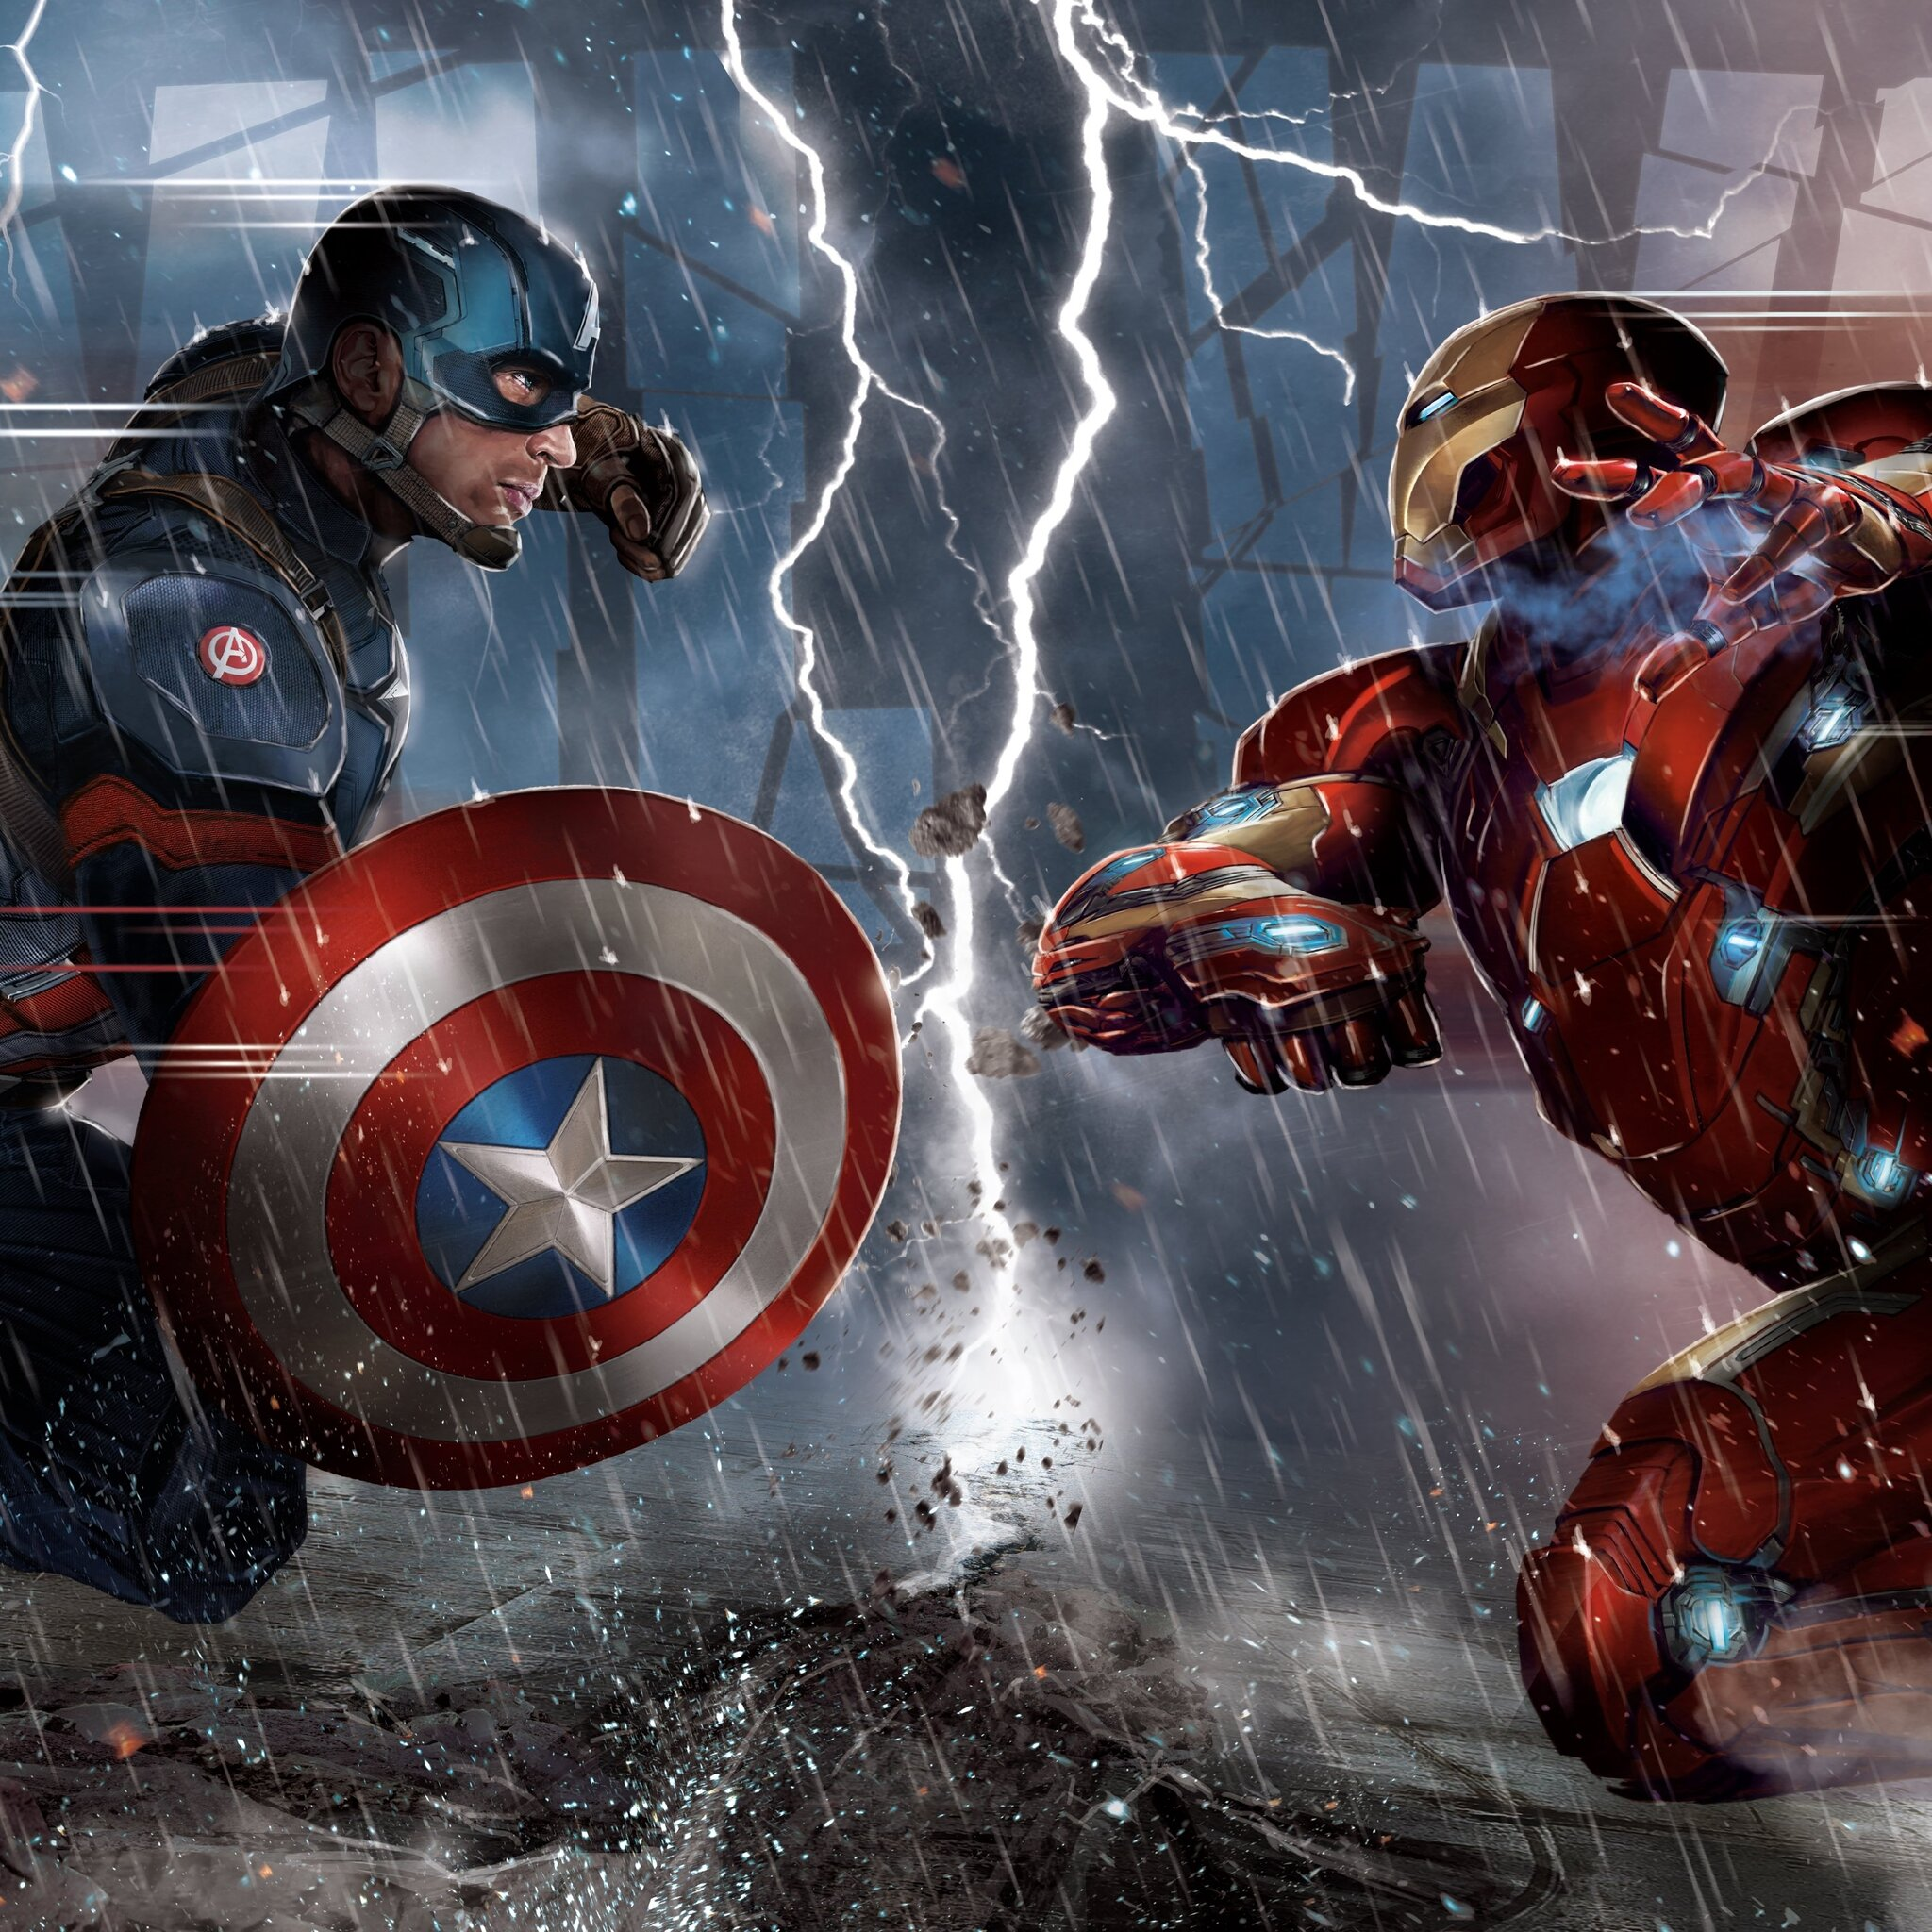 captain-america-vs-iron-man-comic-5k-8q.jpg